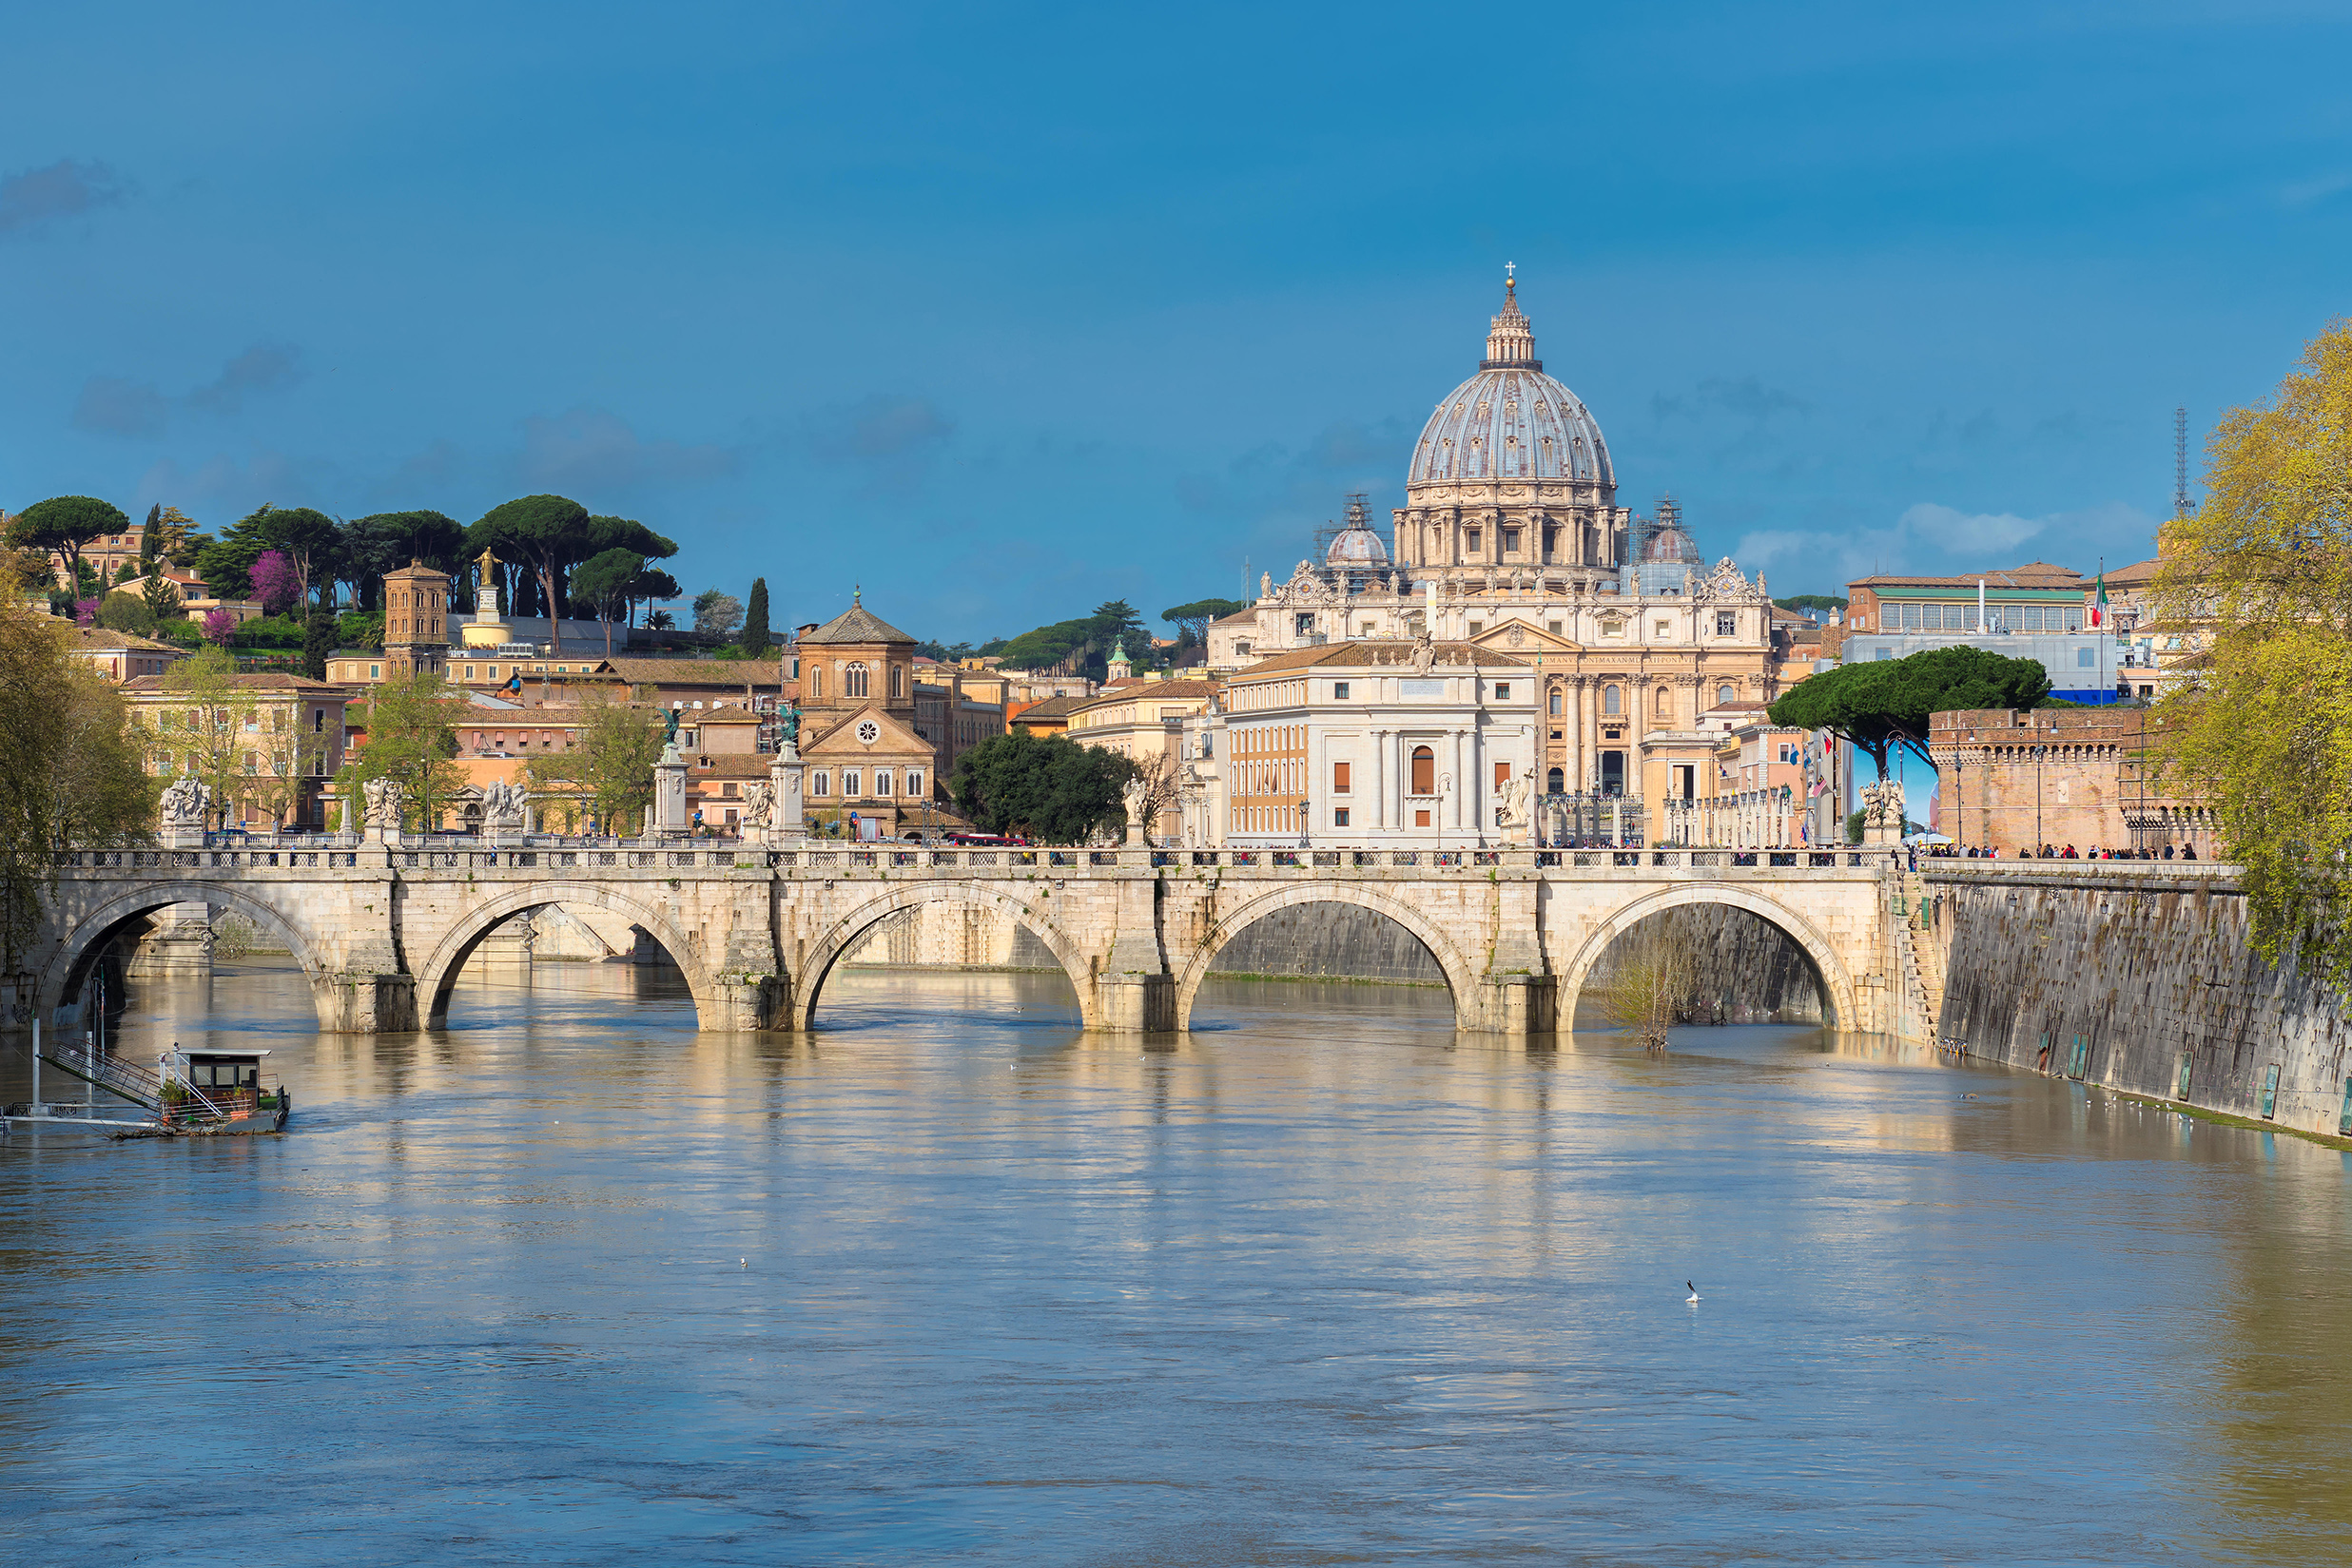 Beautiful view of St. Peter's cathedral with bridge in Vatican, Rome, Italy.